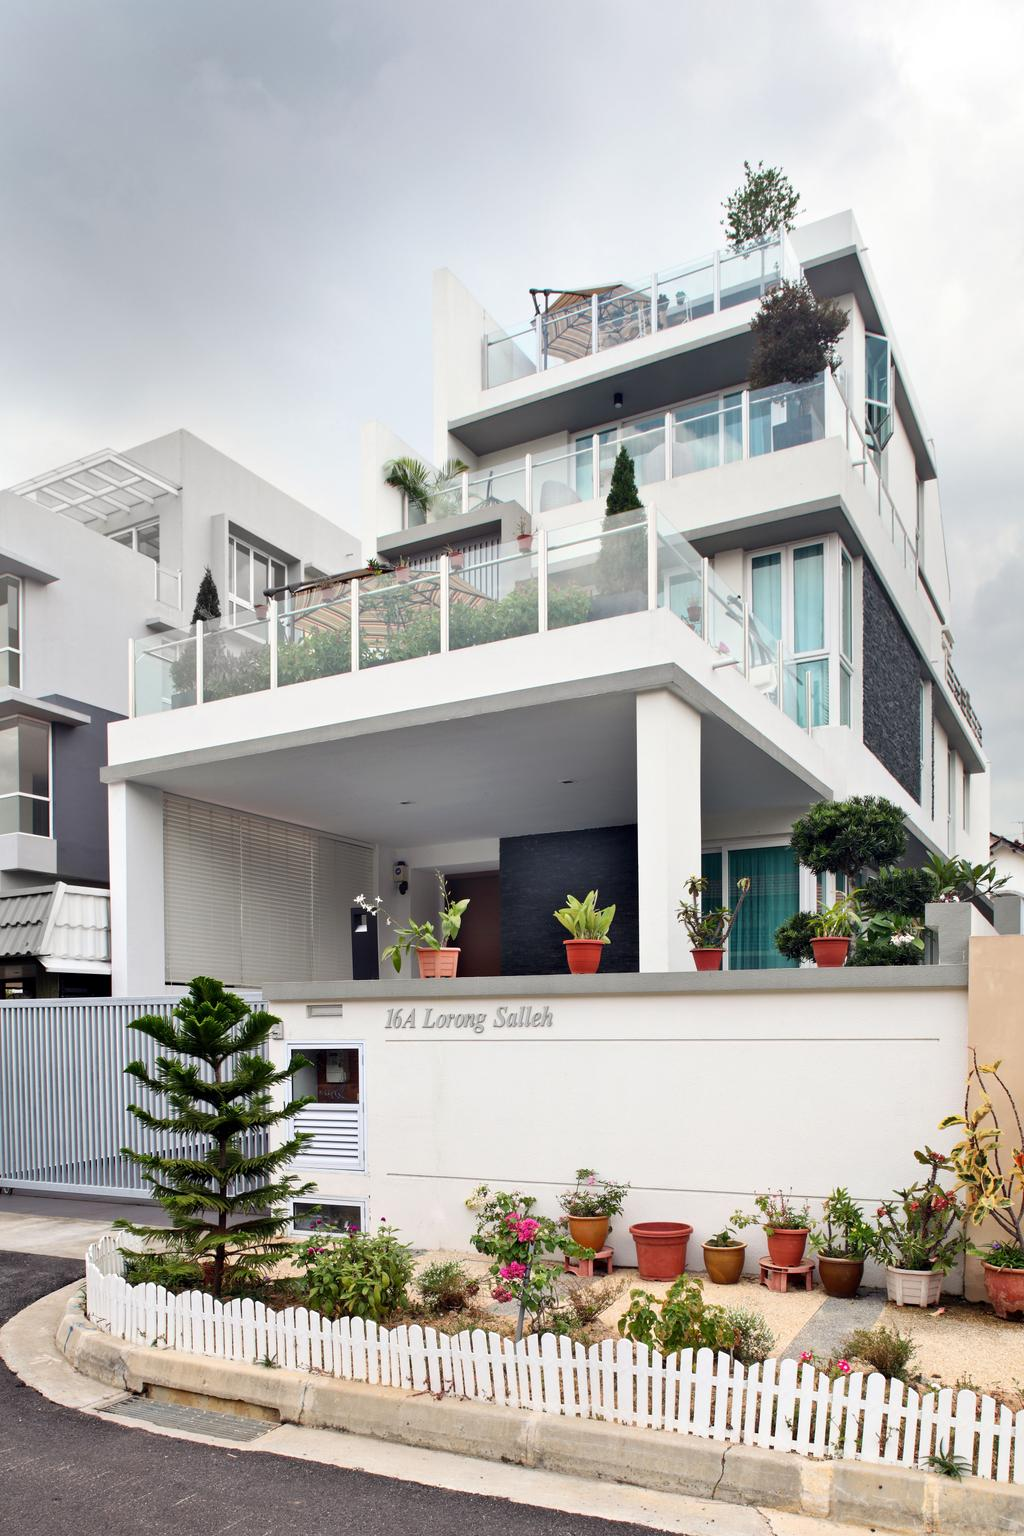 Contemporary, Landed, Lorong Salleh (Block 16A), Interior Designer, The Scientist, Modern, Home Exterior, Architecture, Home Structure, Gate, Entrance, Balcony, Building, House, Housing, Villa, Flora, Jar, Plant, Planter, Potted Plant, Pottery, Vase, Banister, Handrail